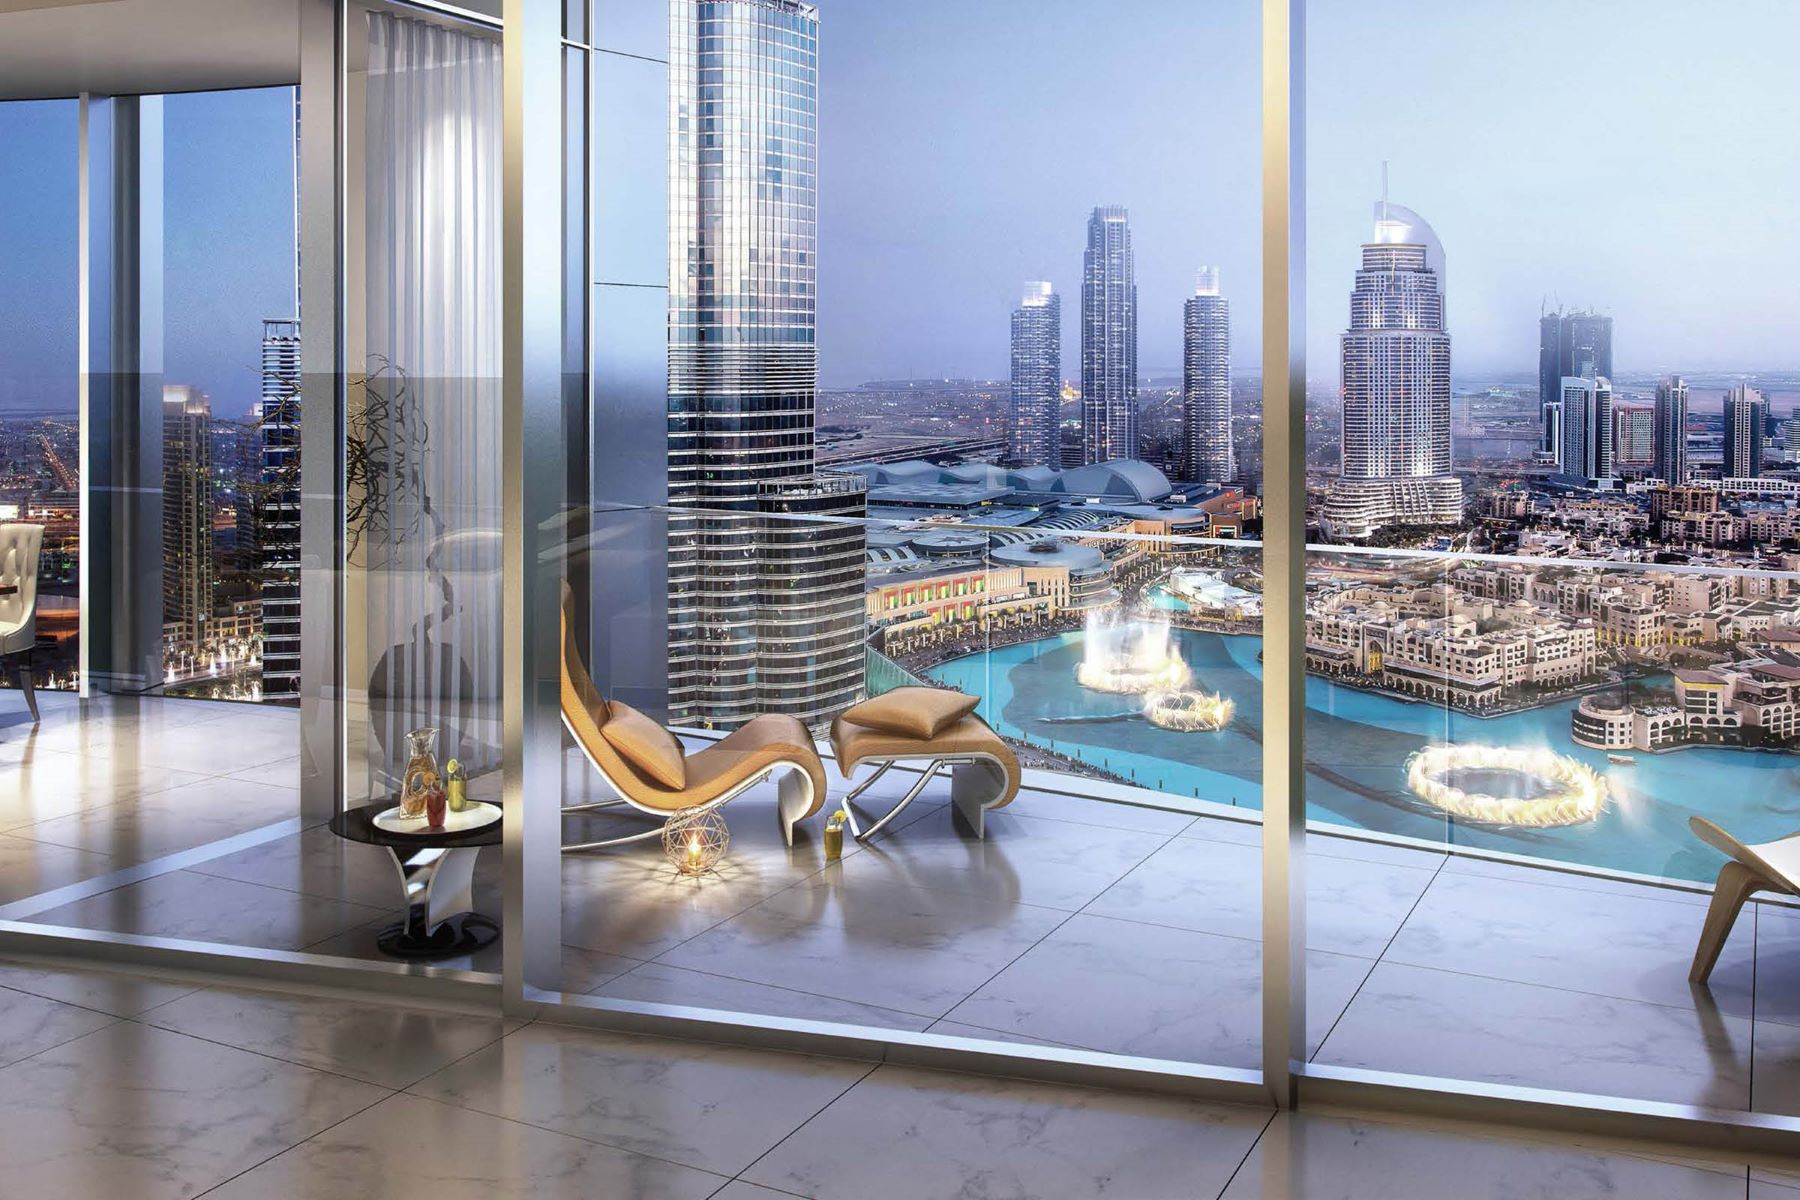 Apartments for Sale at Luxurious 4BR Penthouse Pay 25% To Move In 5 Years PHP Opera District Downtown Dubai Dubai, Dubai 0 United Arab Emirates